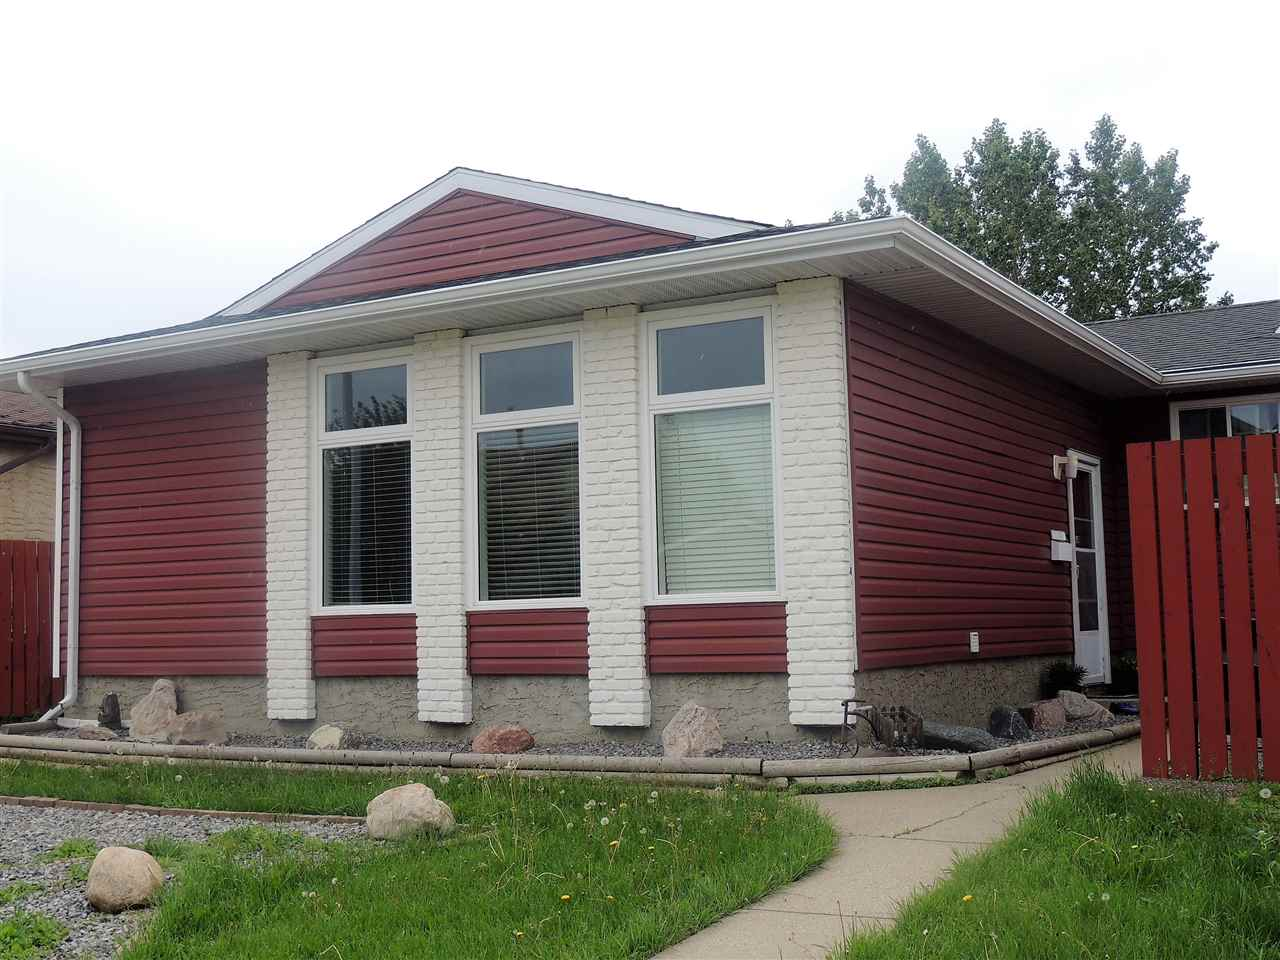 Main Photo: 11943 138 Avenue in Edmonton: Zone 27 House for sale : MLS® # E4069726